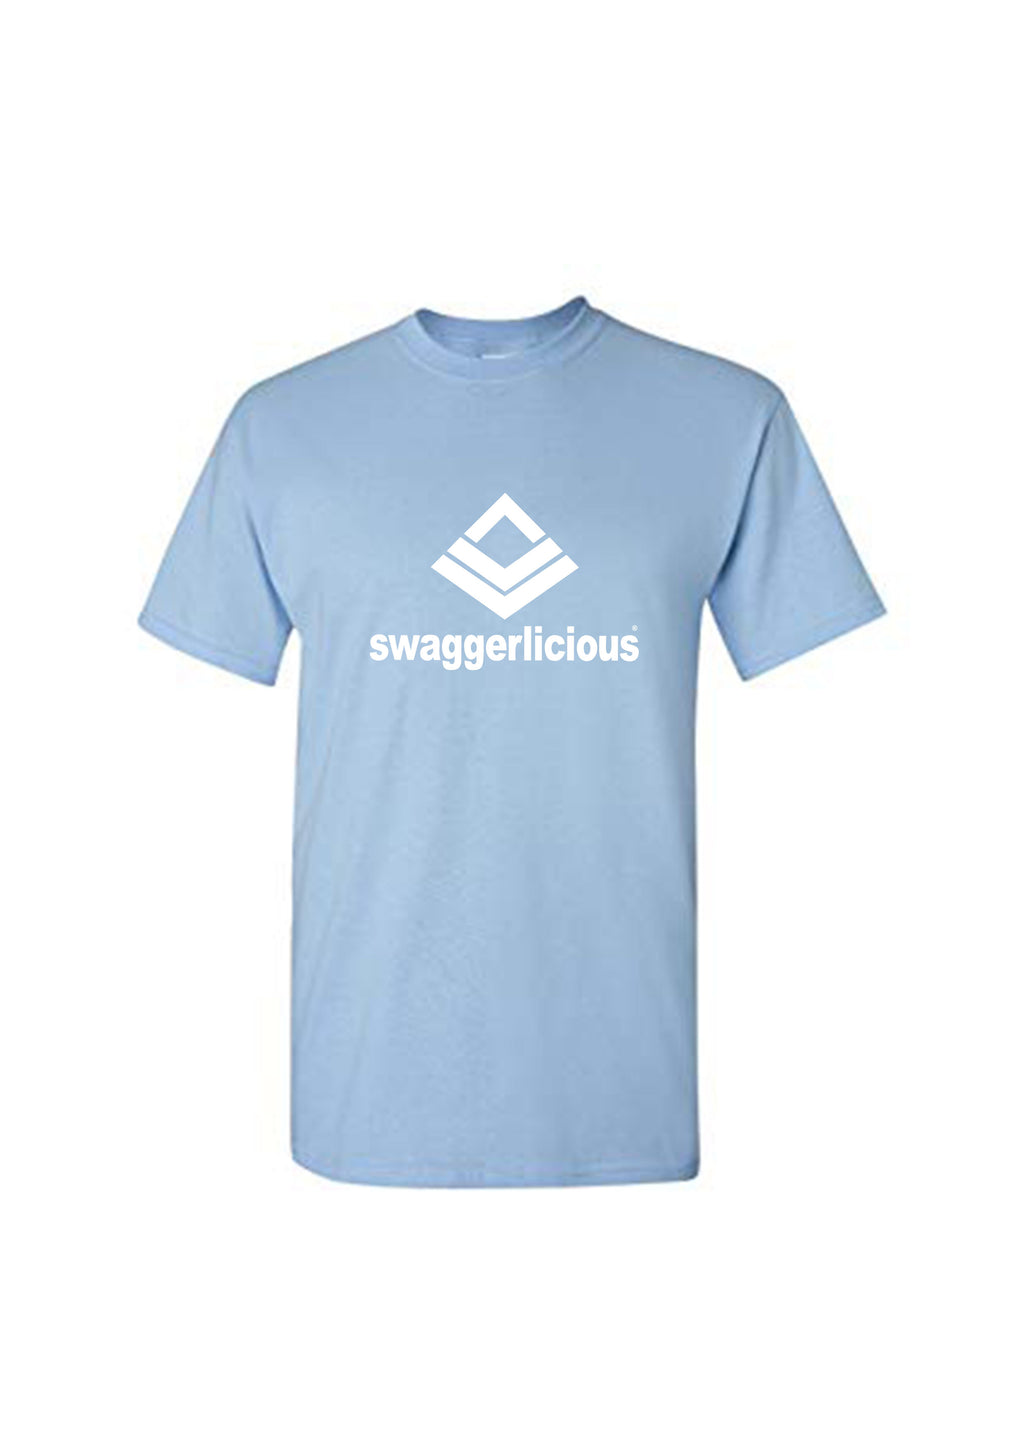 Swaggerlicious Classic Sky Blue Sports Tee - swaggerlicious-clothing.com